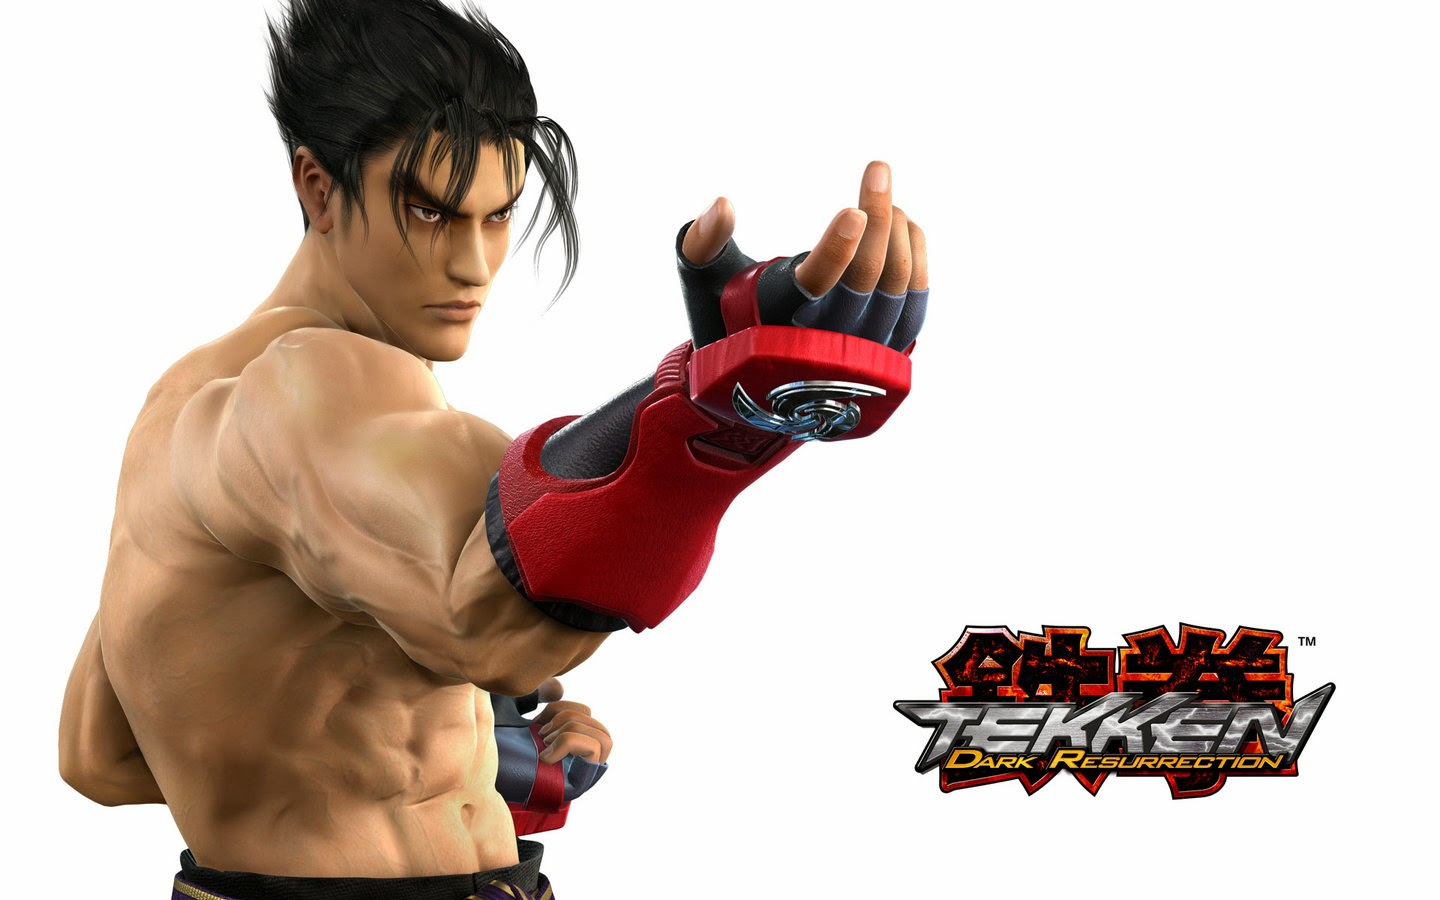 Tekken 5 Dark Resurrection Apk For Android Phones And Tablets